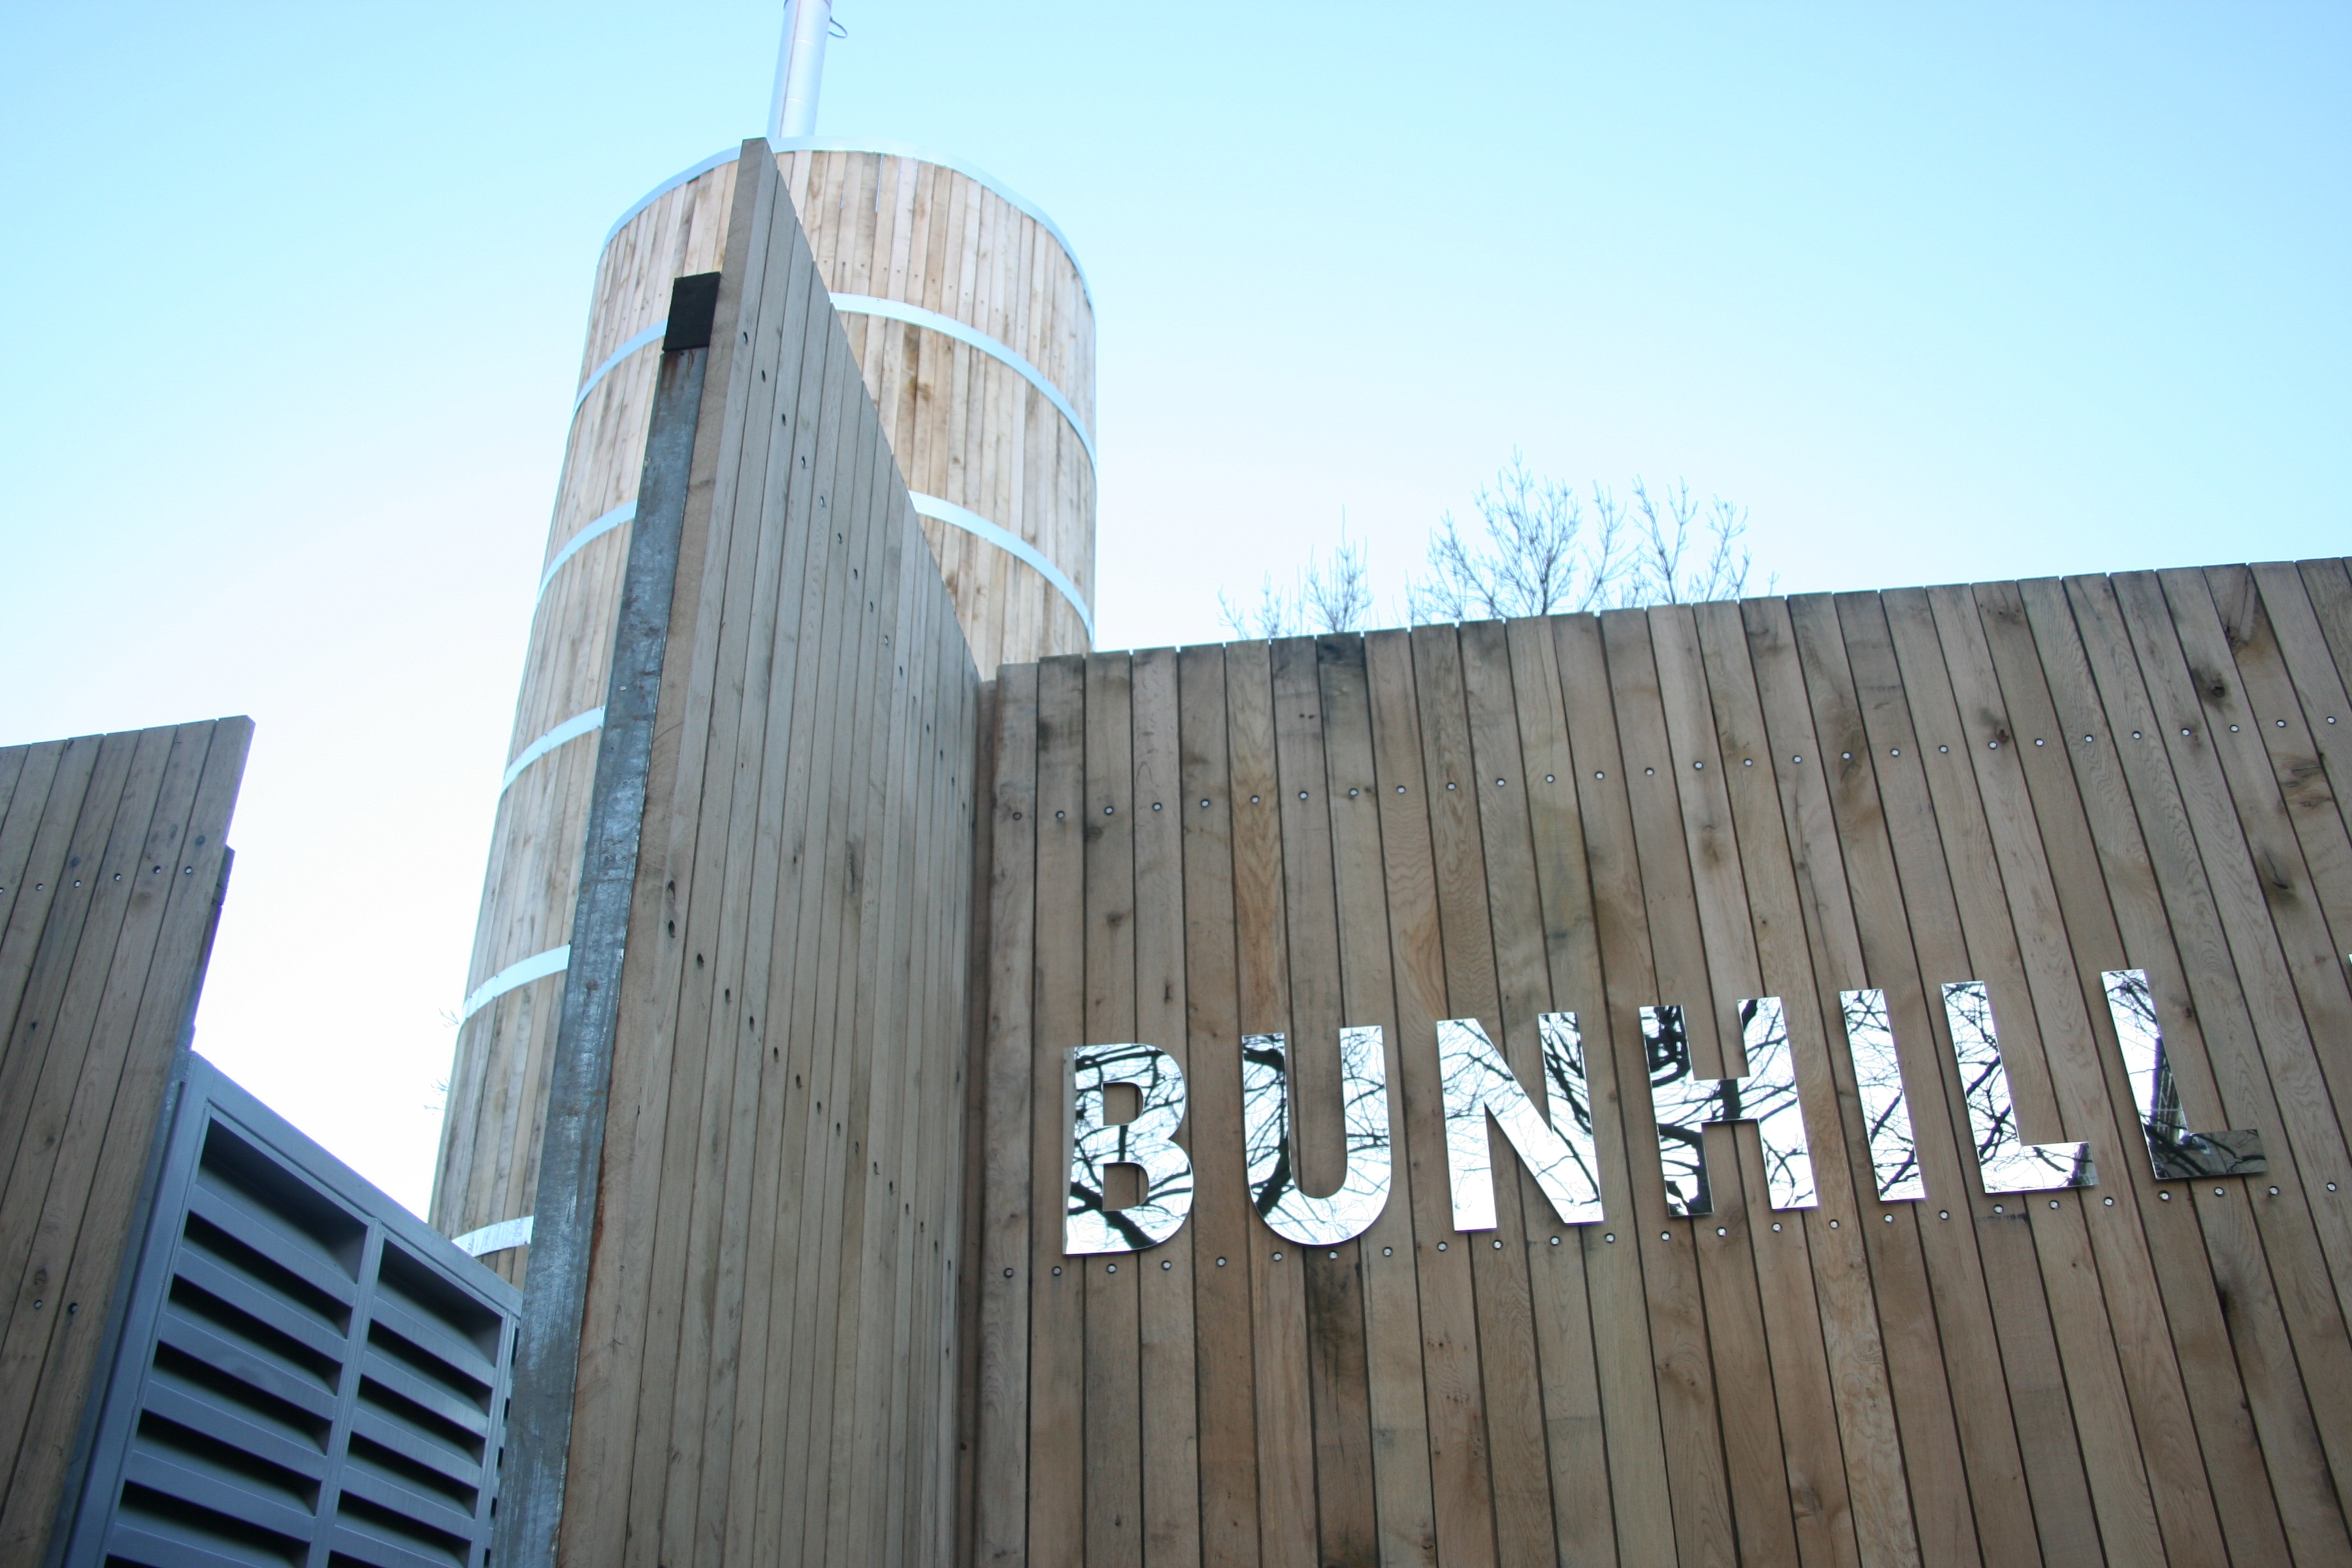 20121129_Bunhill_launch_011_1_.JPG